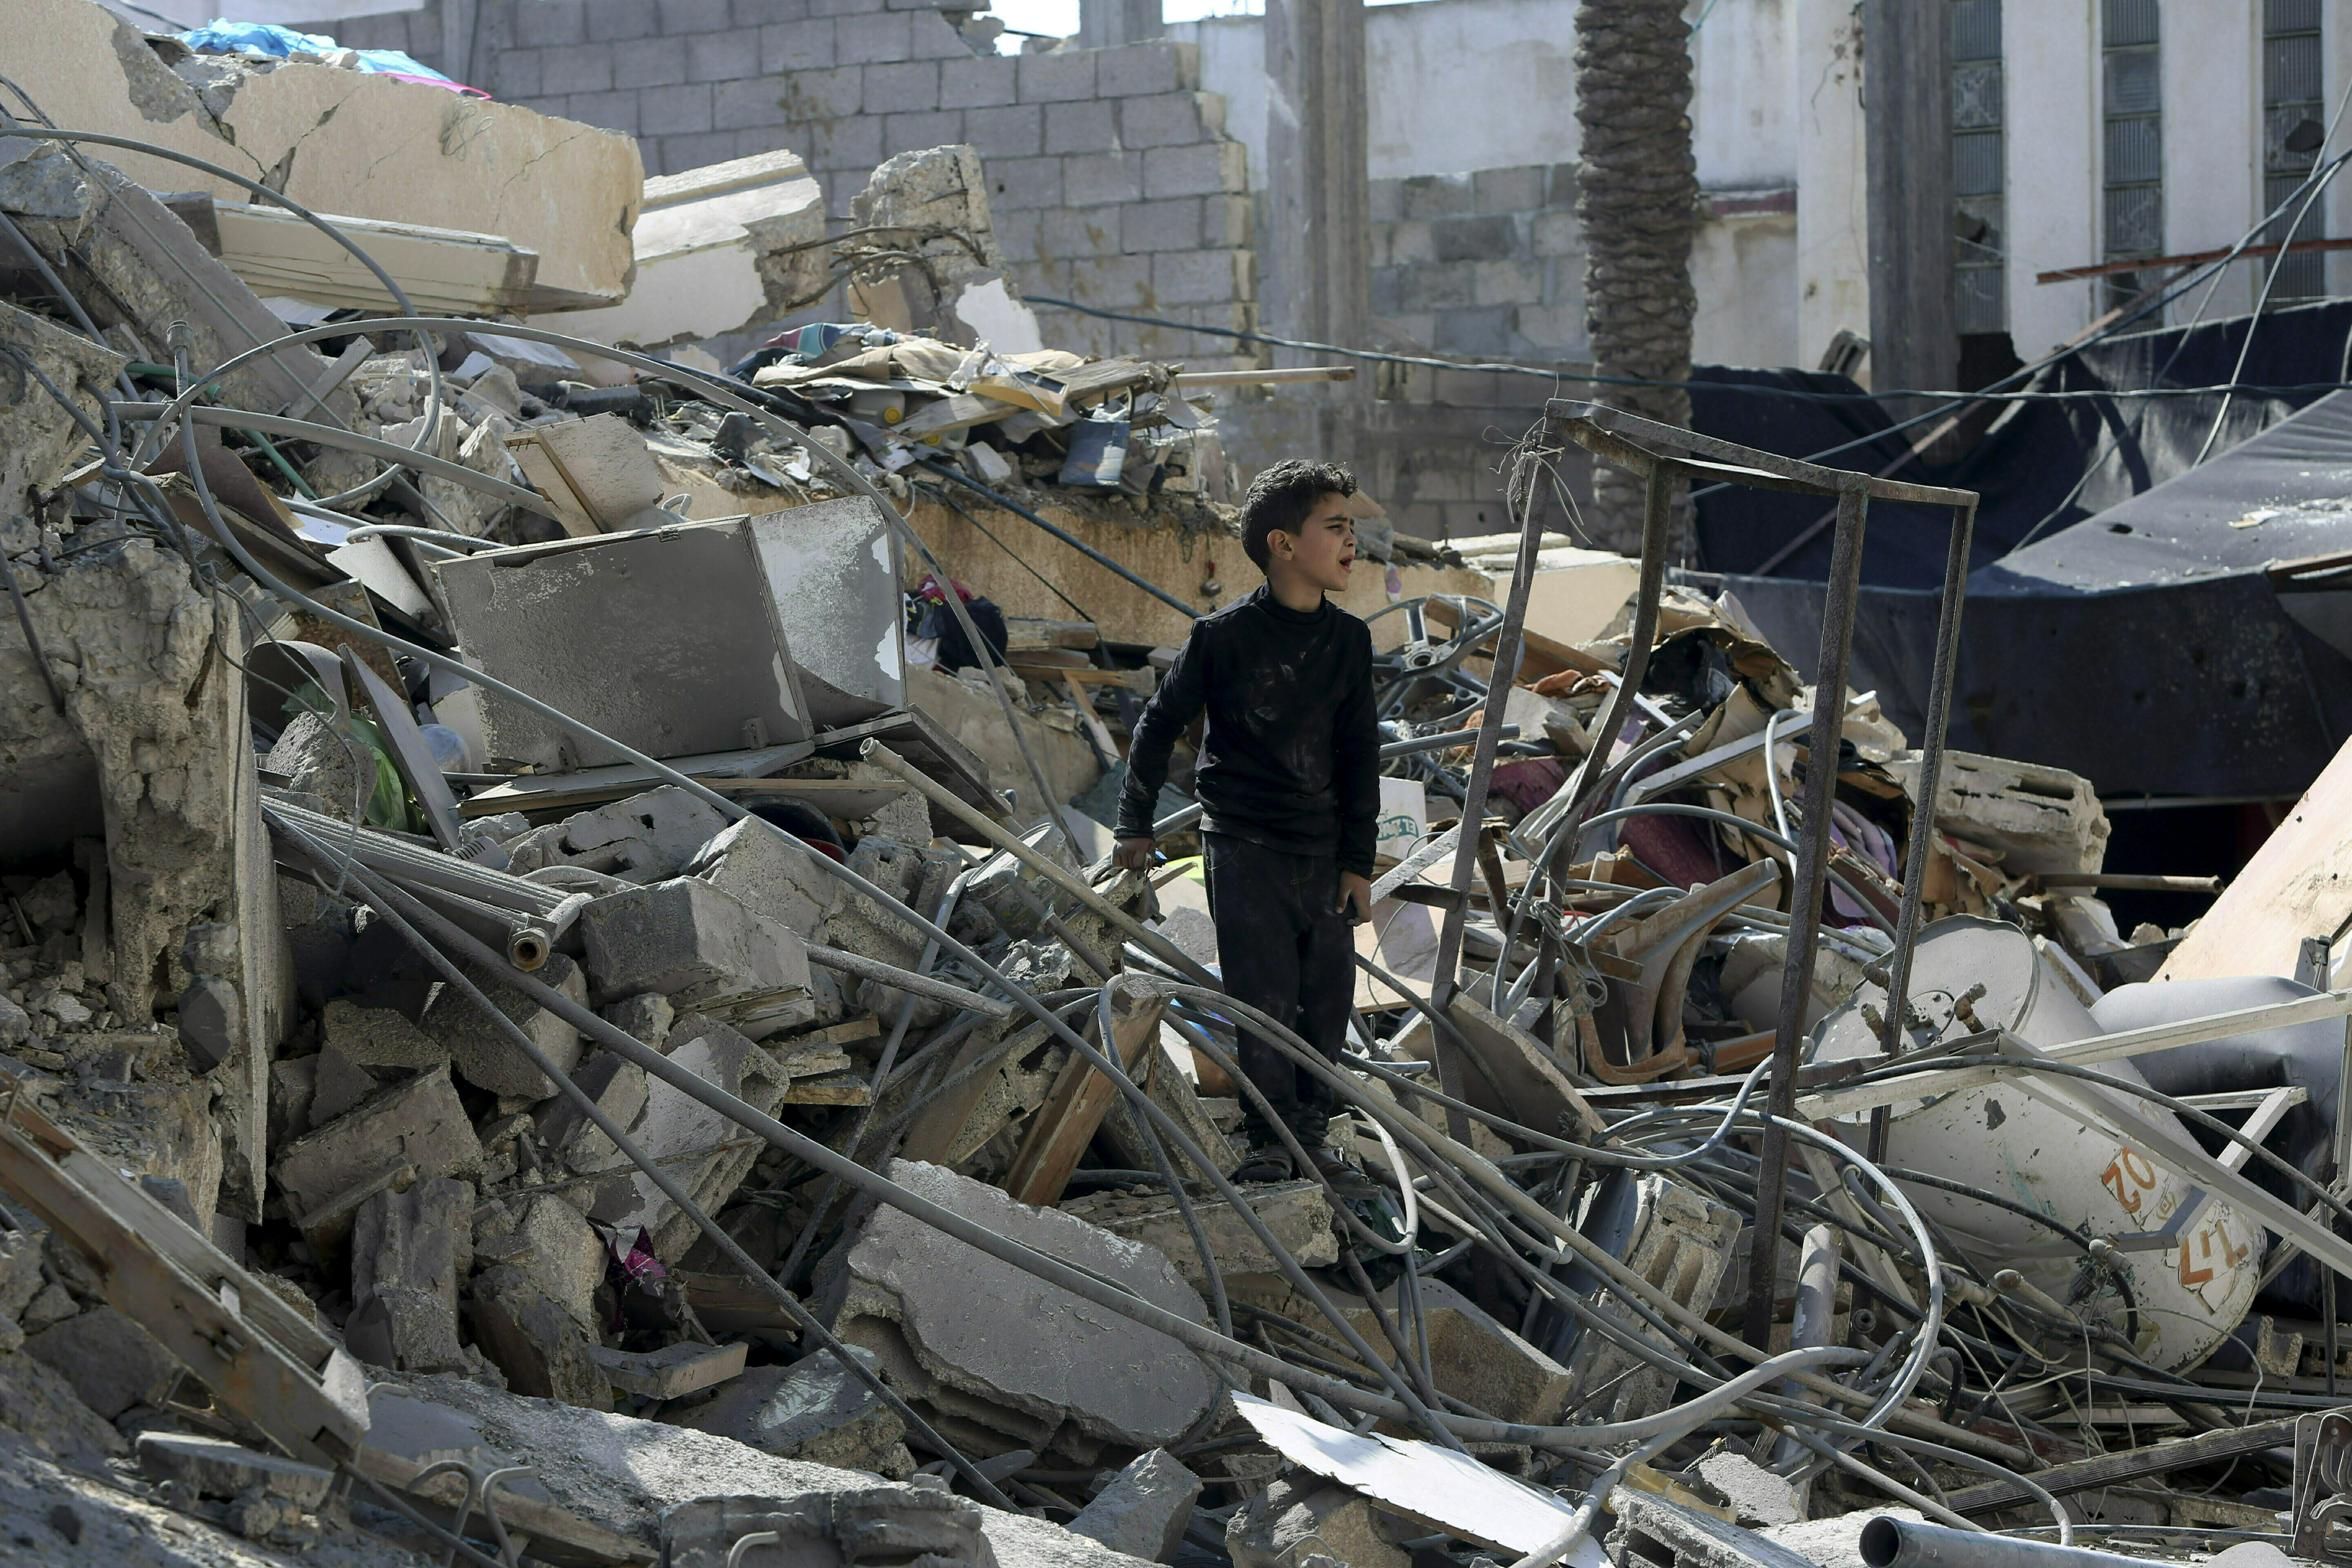 FILE - In this Wednesday, March 27, 2019 file photo, a Palestinian boy searches for their family's belongings amid the rubble of a destroyed building near a Hamas security building that was destroyed in an Israeli airstrike in Gaza City. Hamas controls Gaza more tightly than ever, despite unprecedented domestic unrest and its failure to significantly weaken Israel's chokehold of the territory after a year of weekly anti-blockade rallies along their shared frontier. (AP Photo/Adel Hana, File)